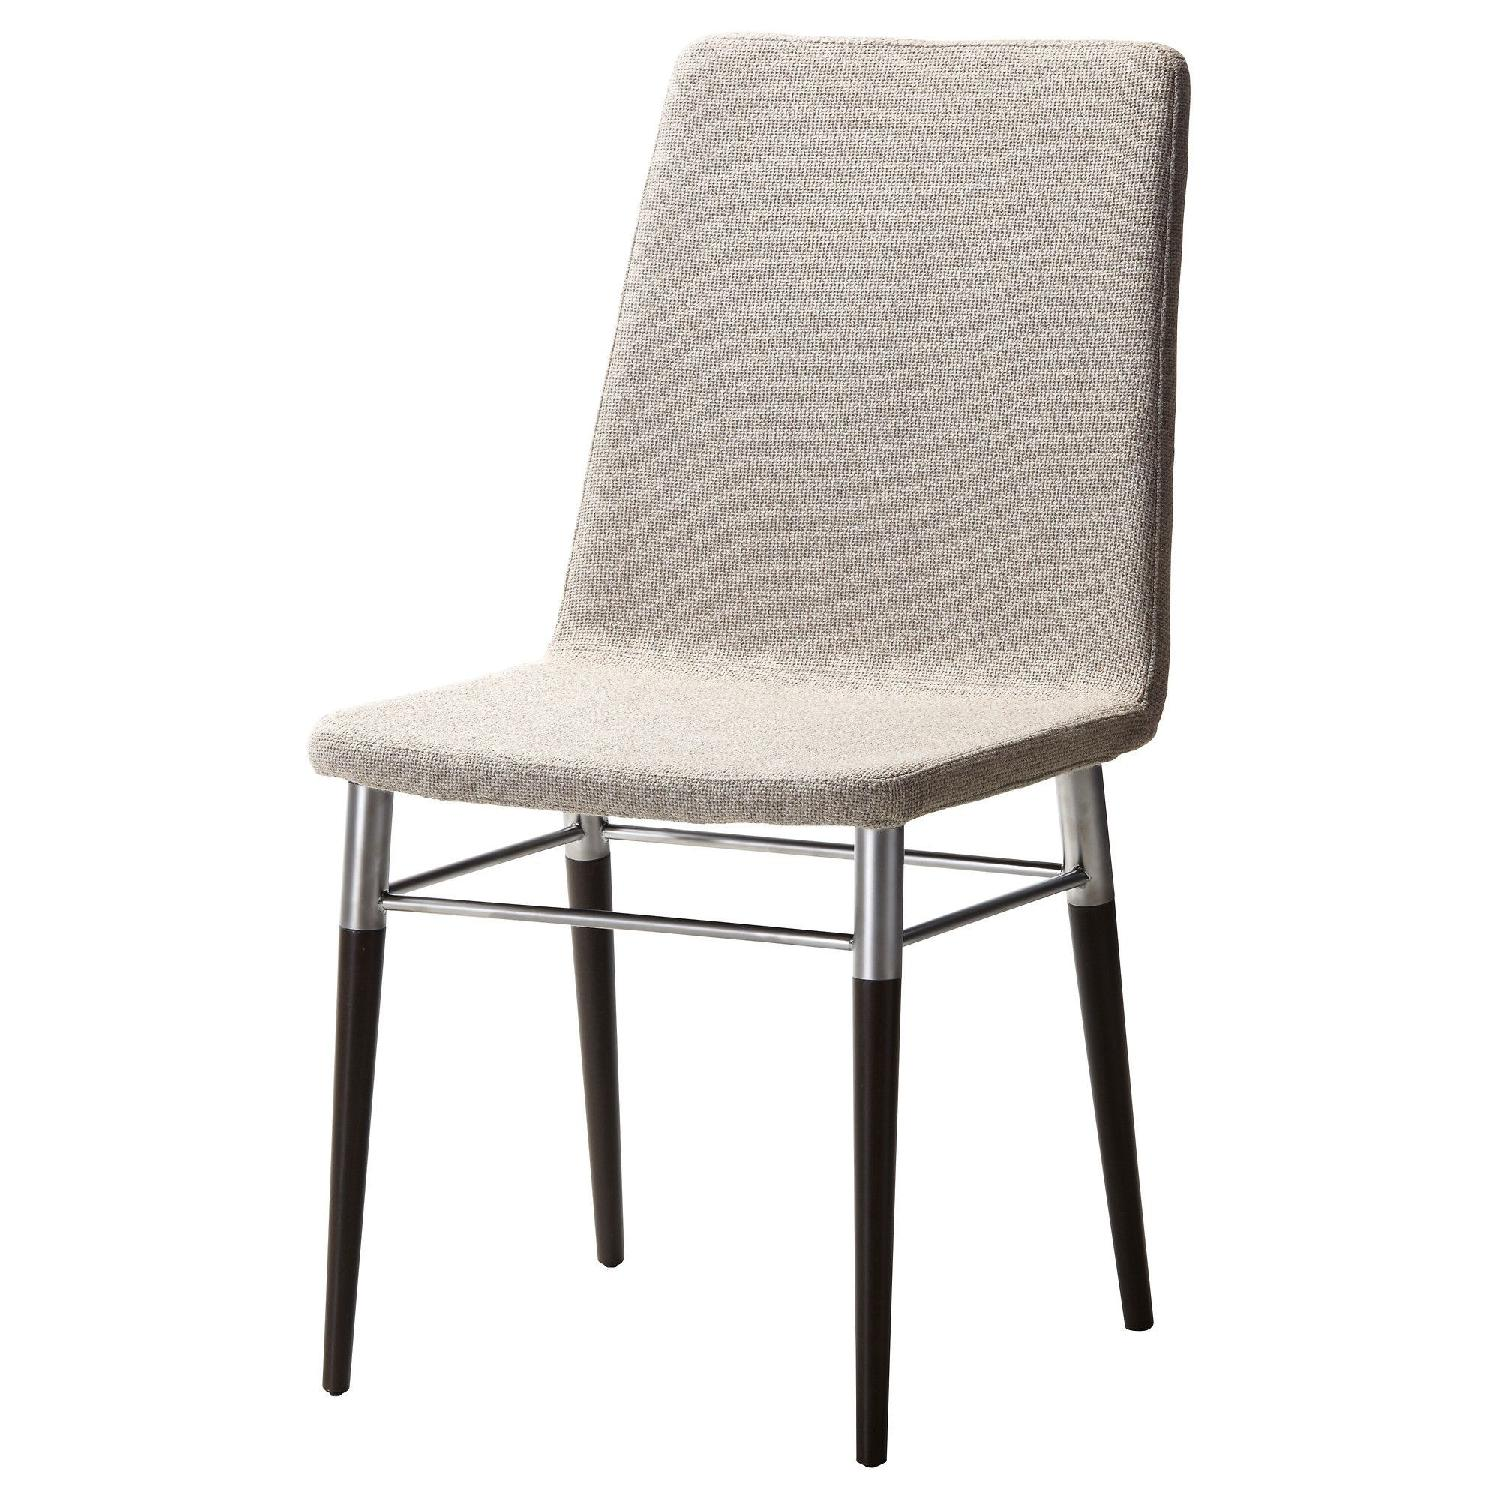 Ikea Preben Dining Chairs - image-0